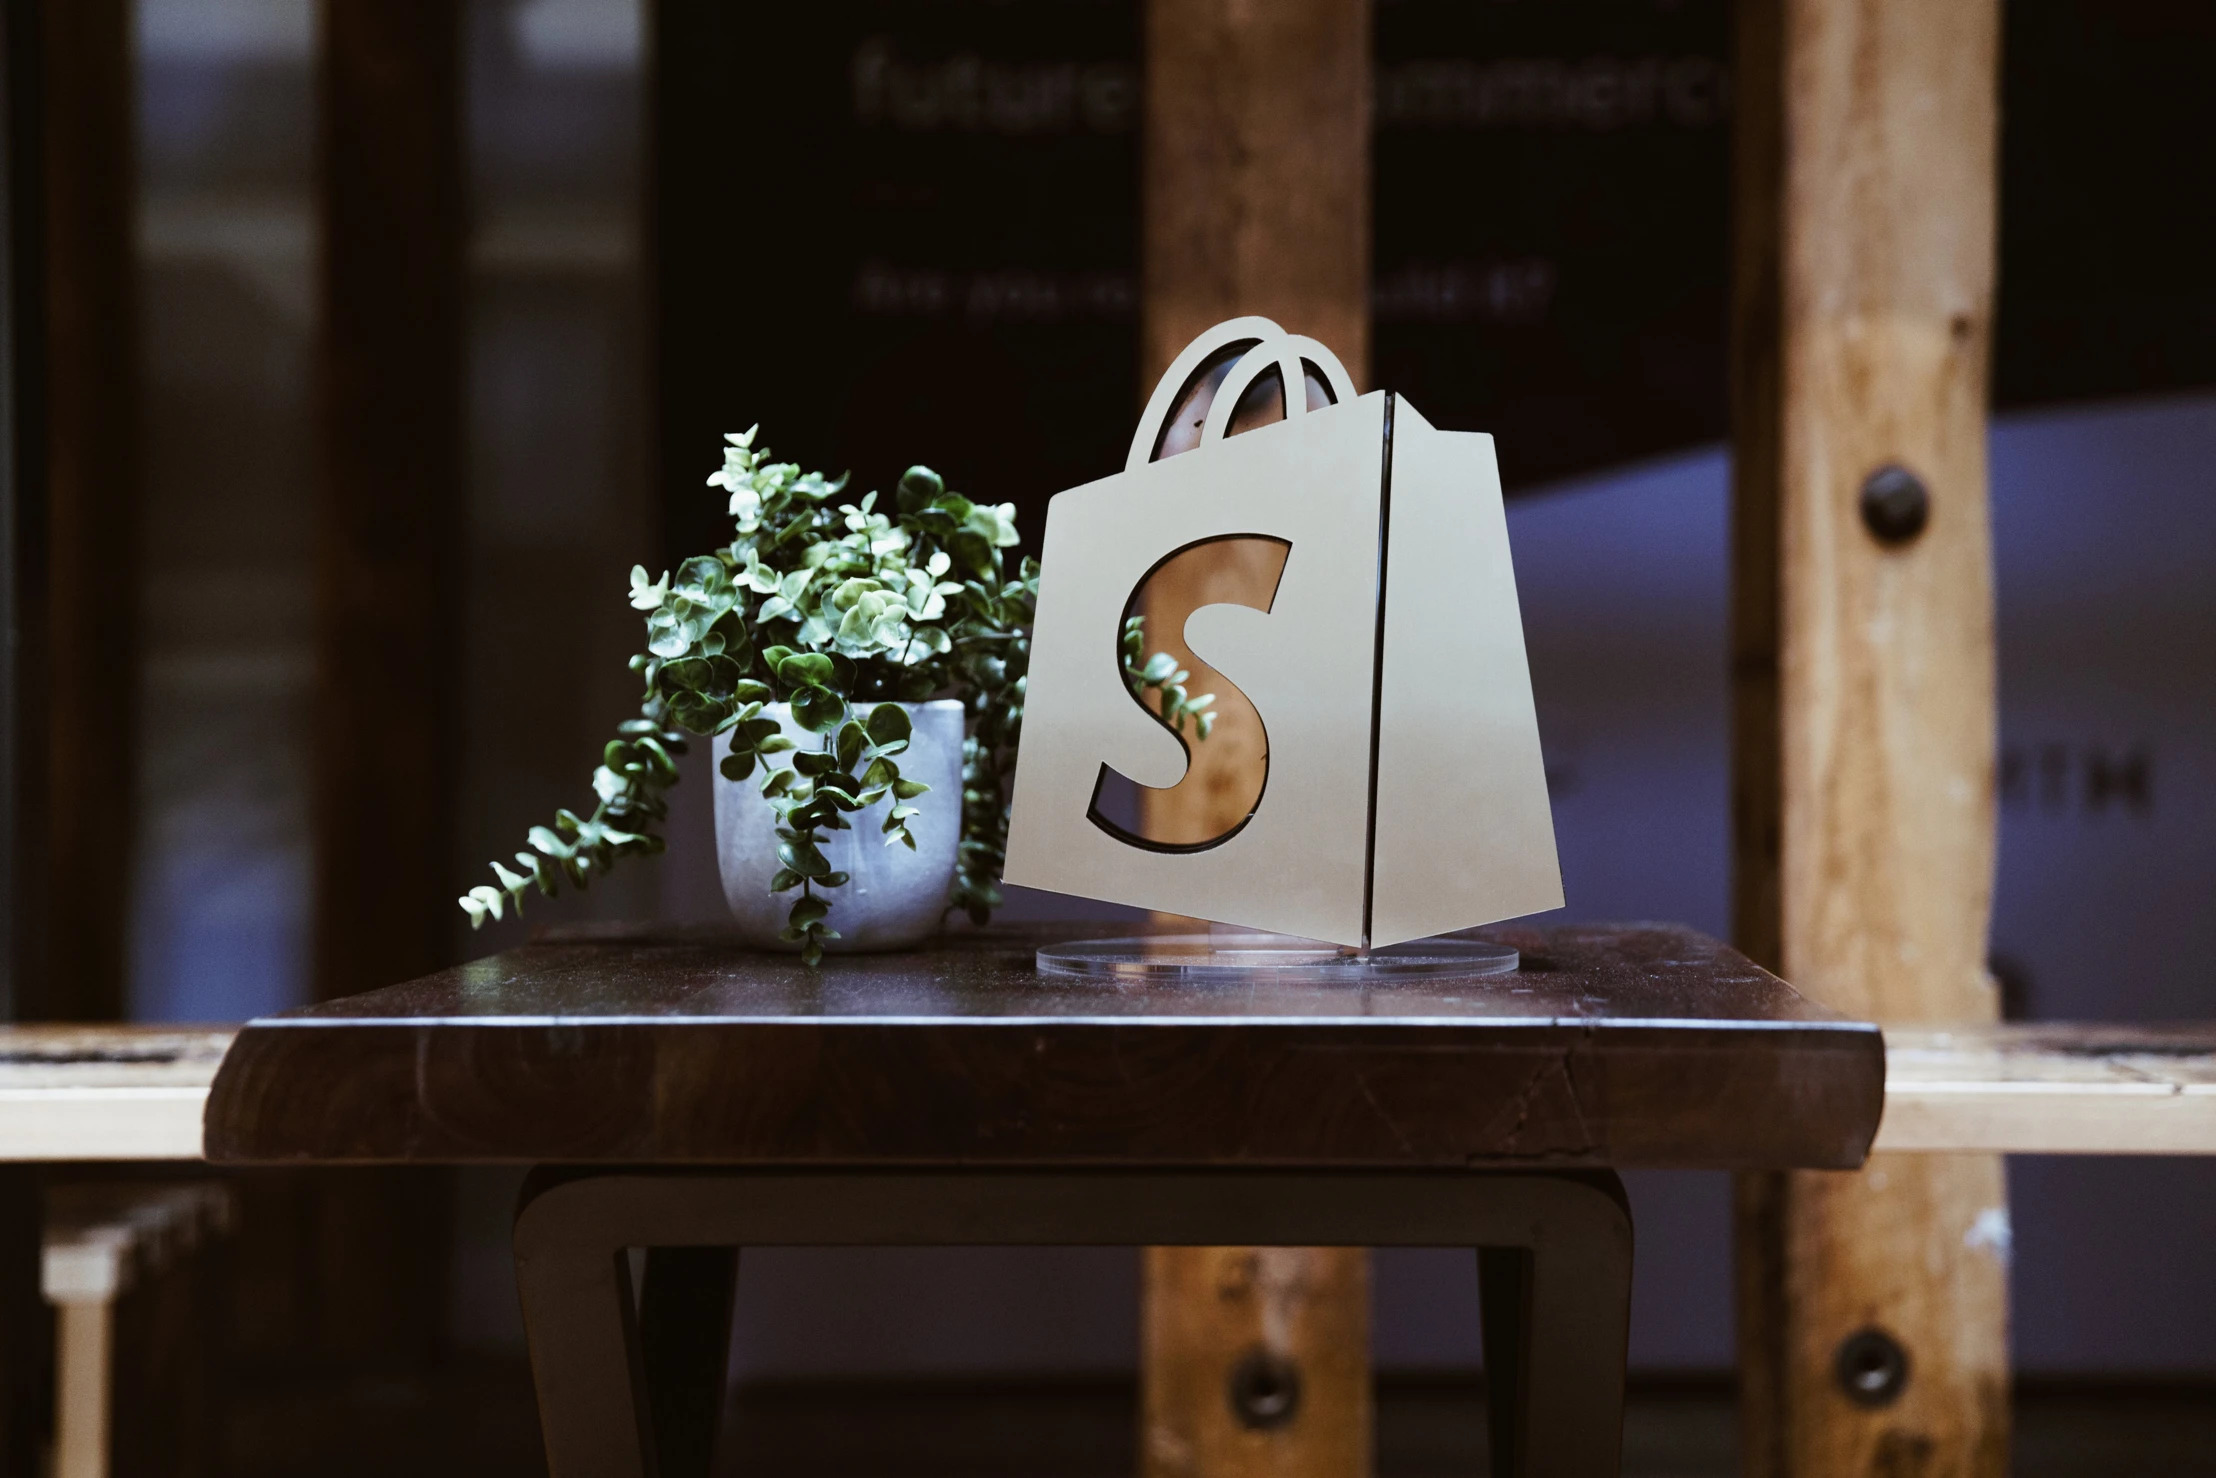 shopify logo on bag